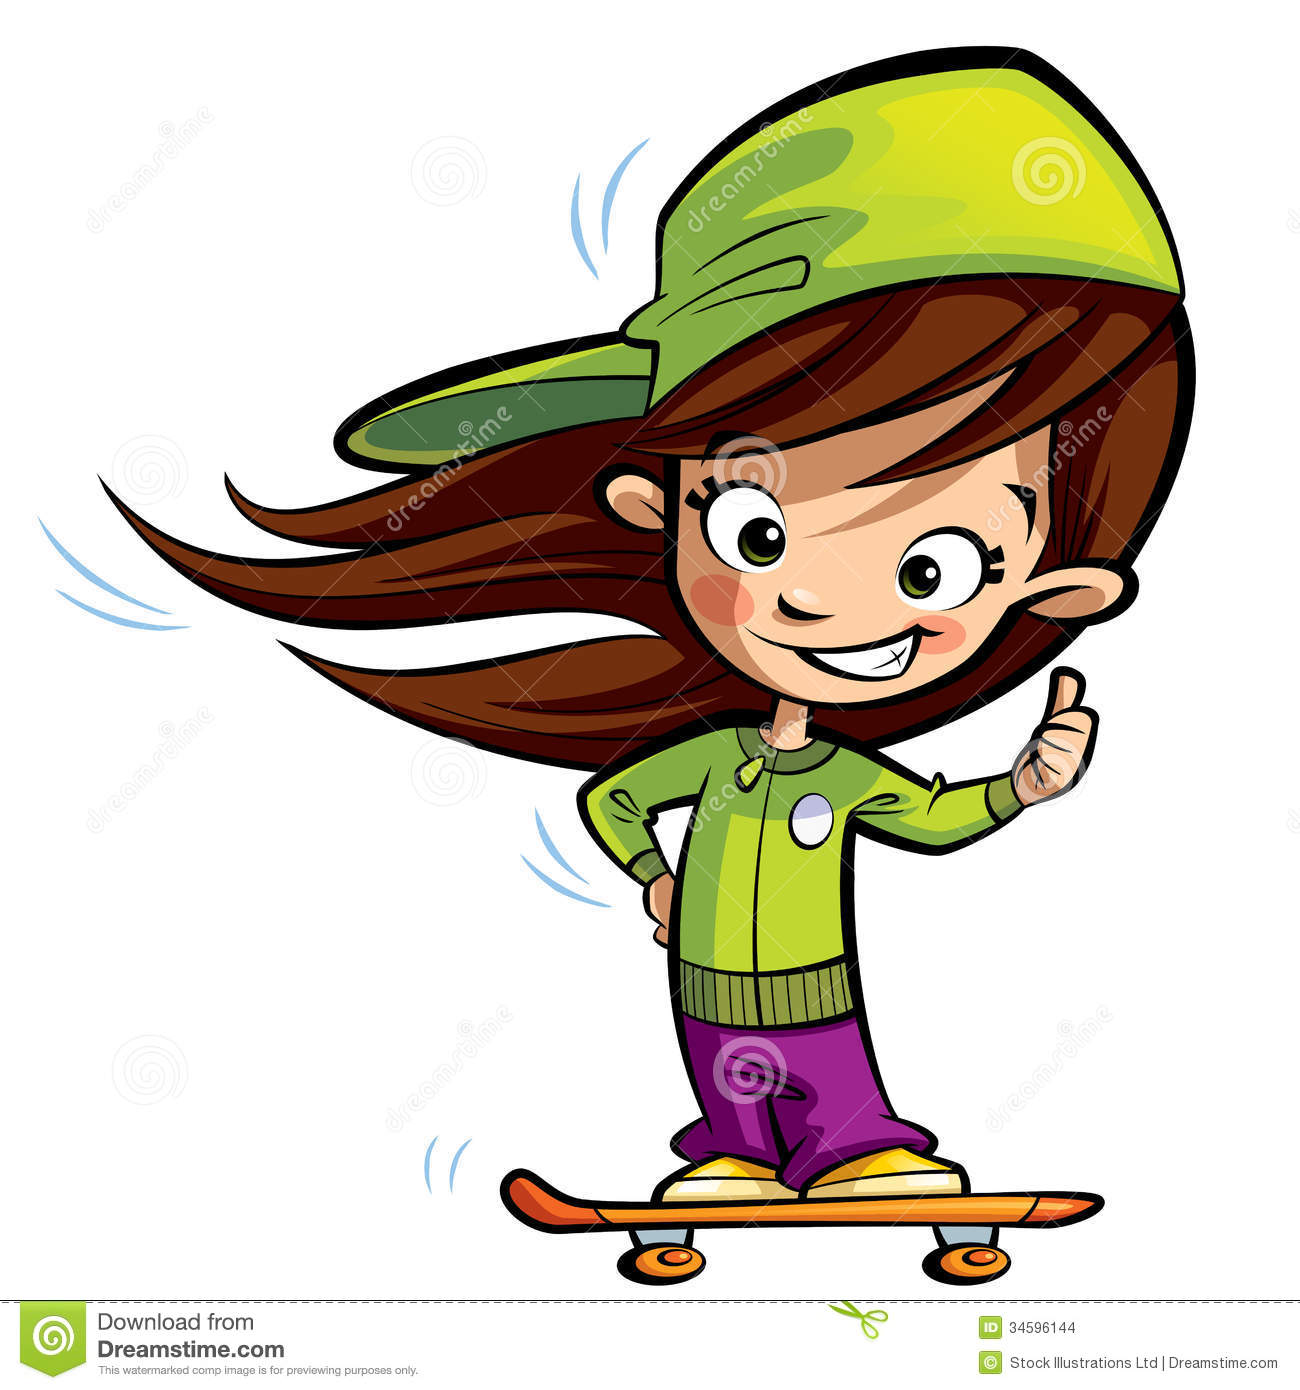 Girl thumbs up clipart picture free download Girl Thumbs Up Clipart - Clipart Kid picture free download